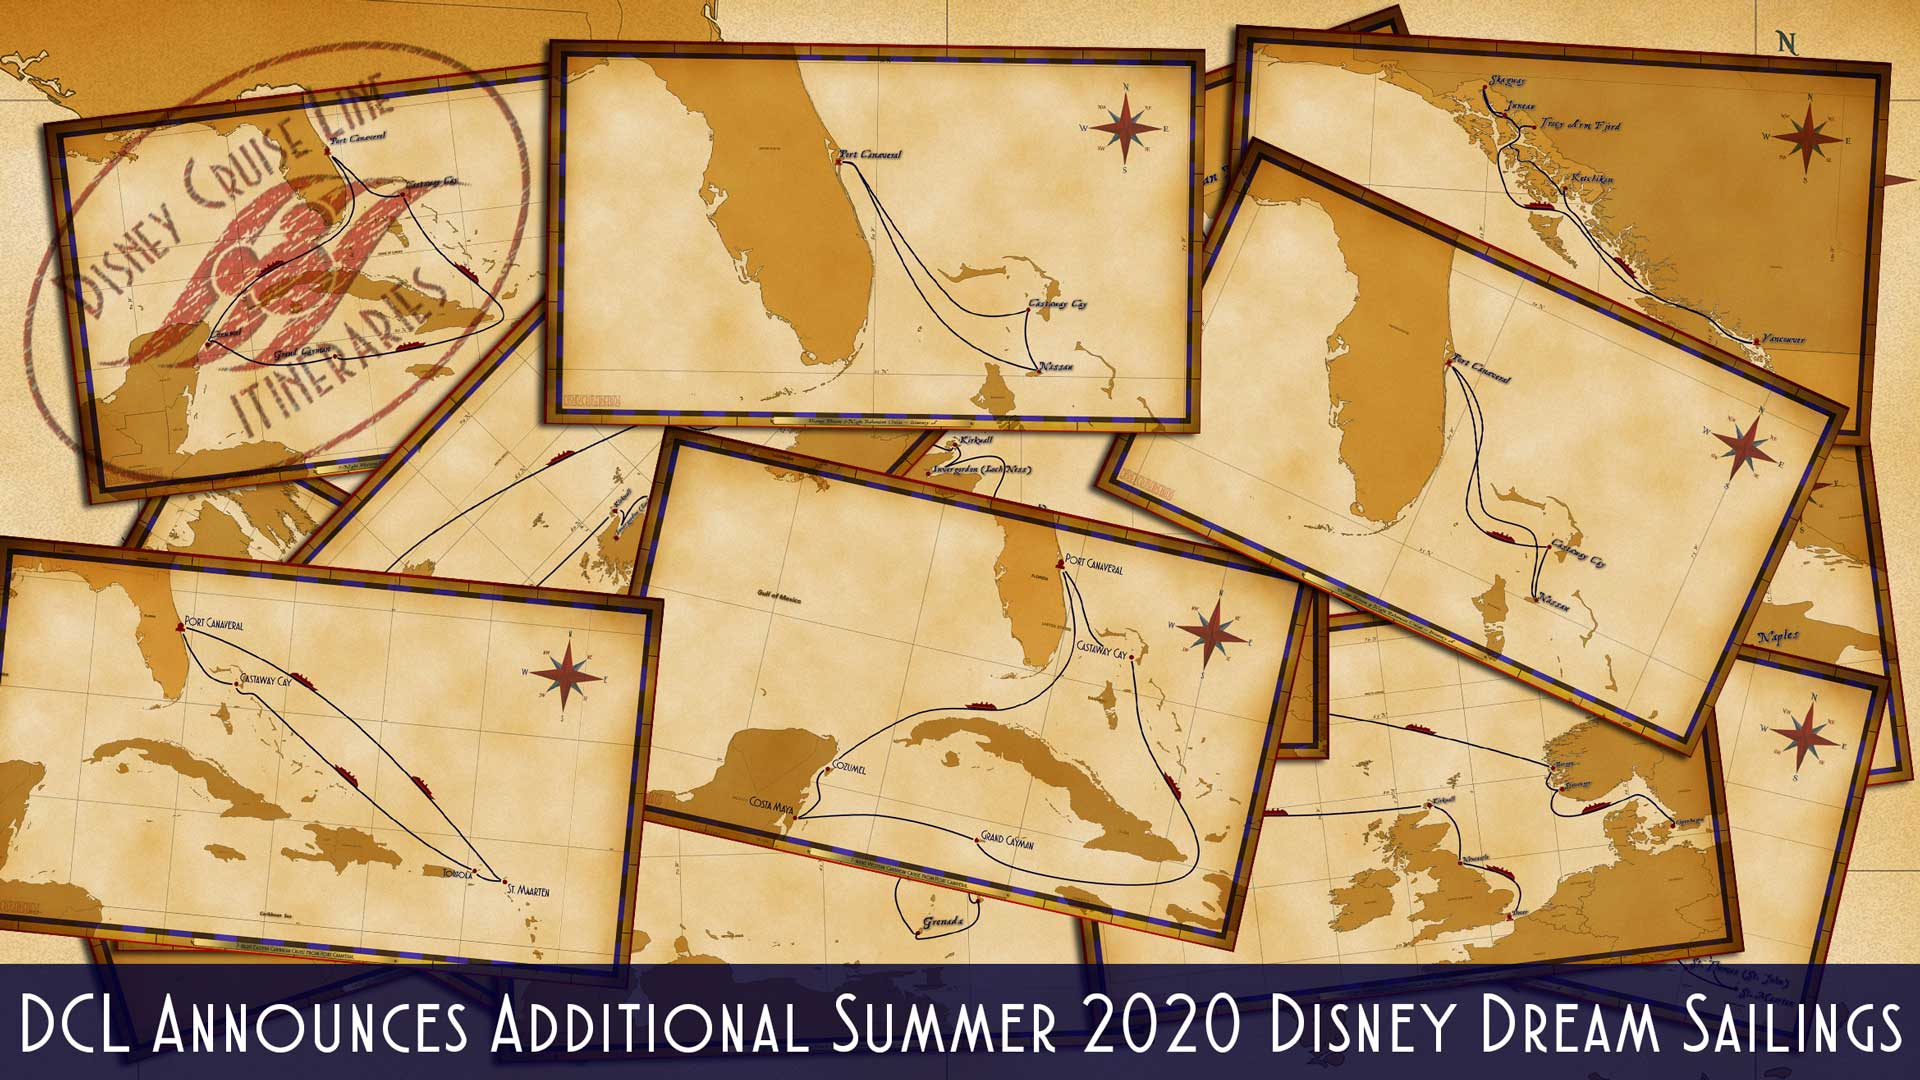 DCL Itinerary Release Summer 2020 Disney Dream Additional Sailings